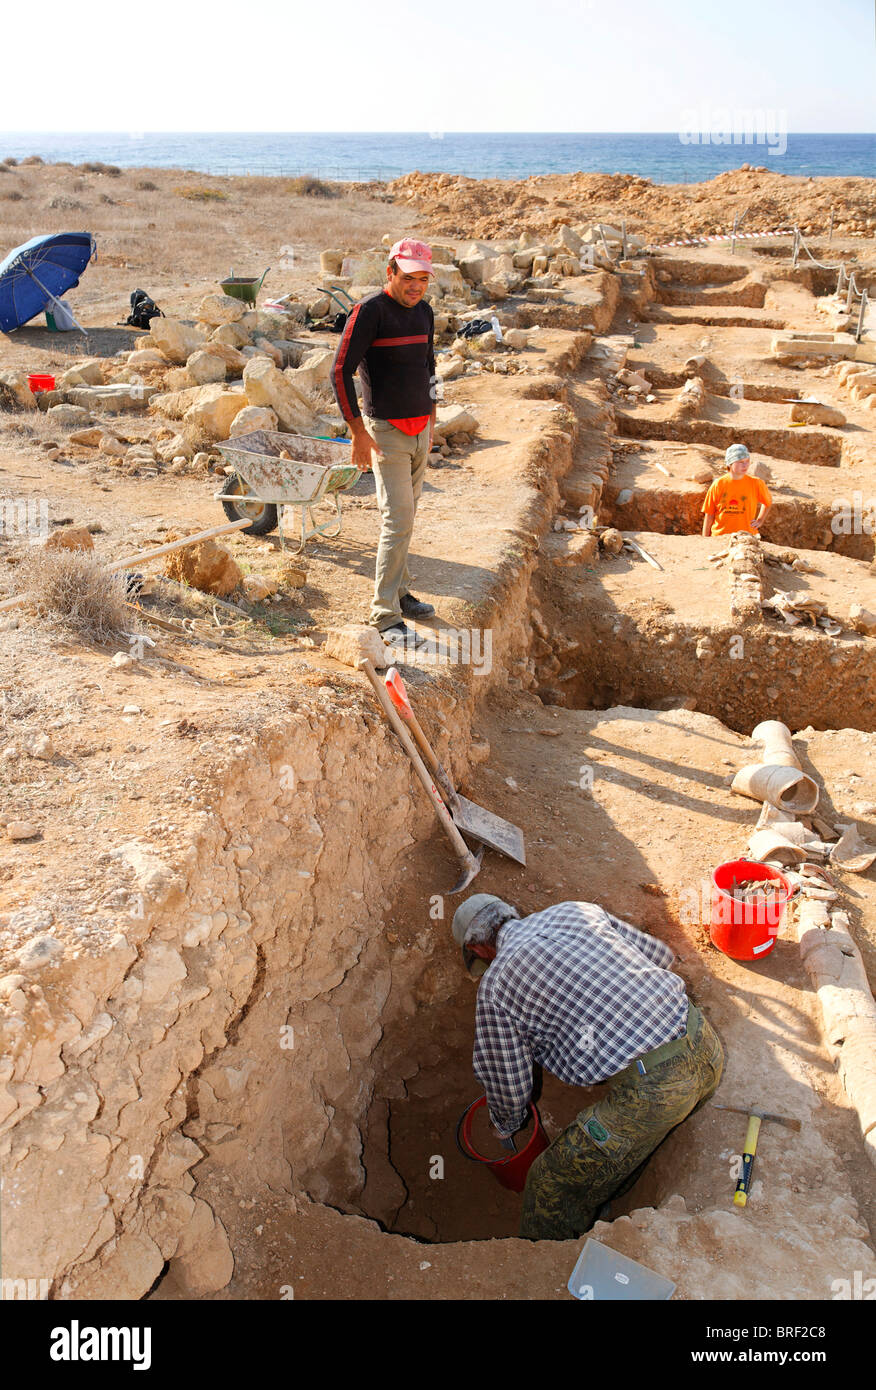 Archeologists excavating ancient foundations, UNESCO World Heritage Site, Kato, Paphos, Pafos, Cyprus, Europe - Stock Image